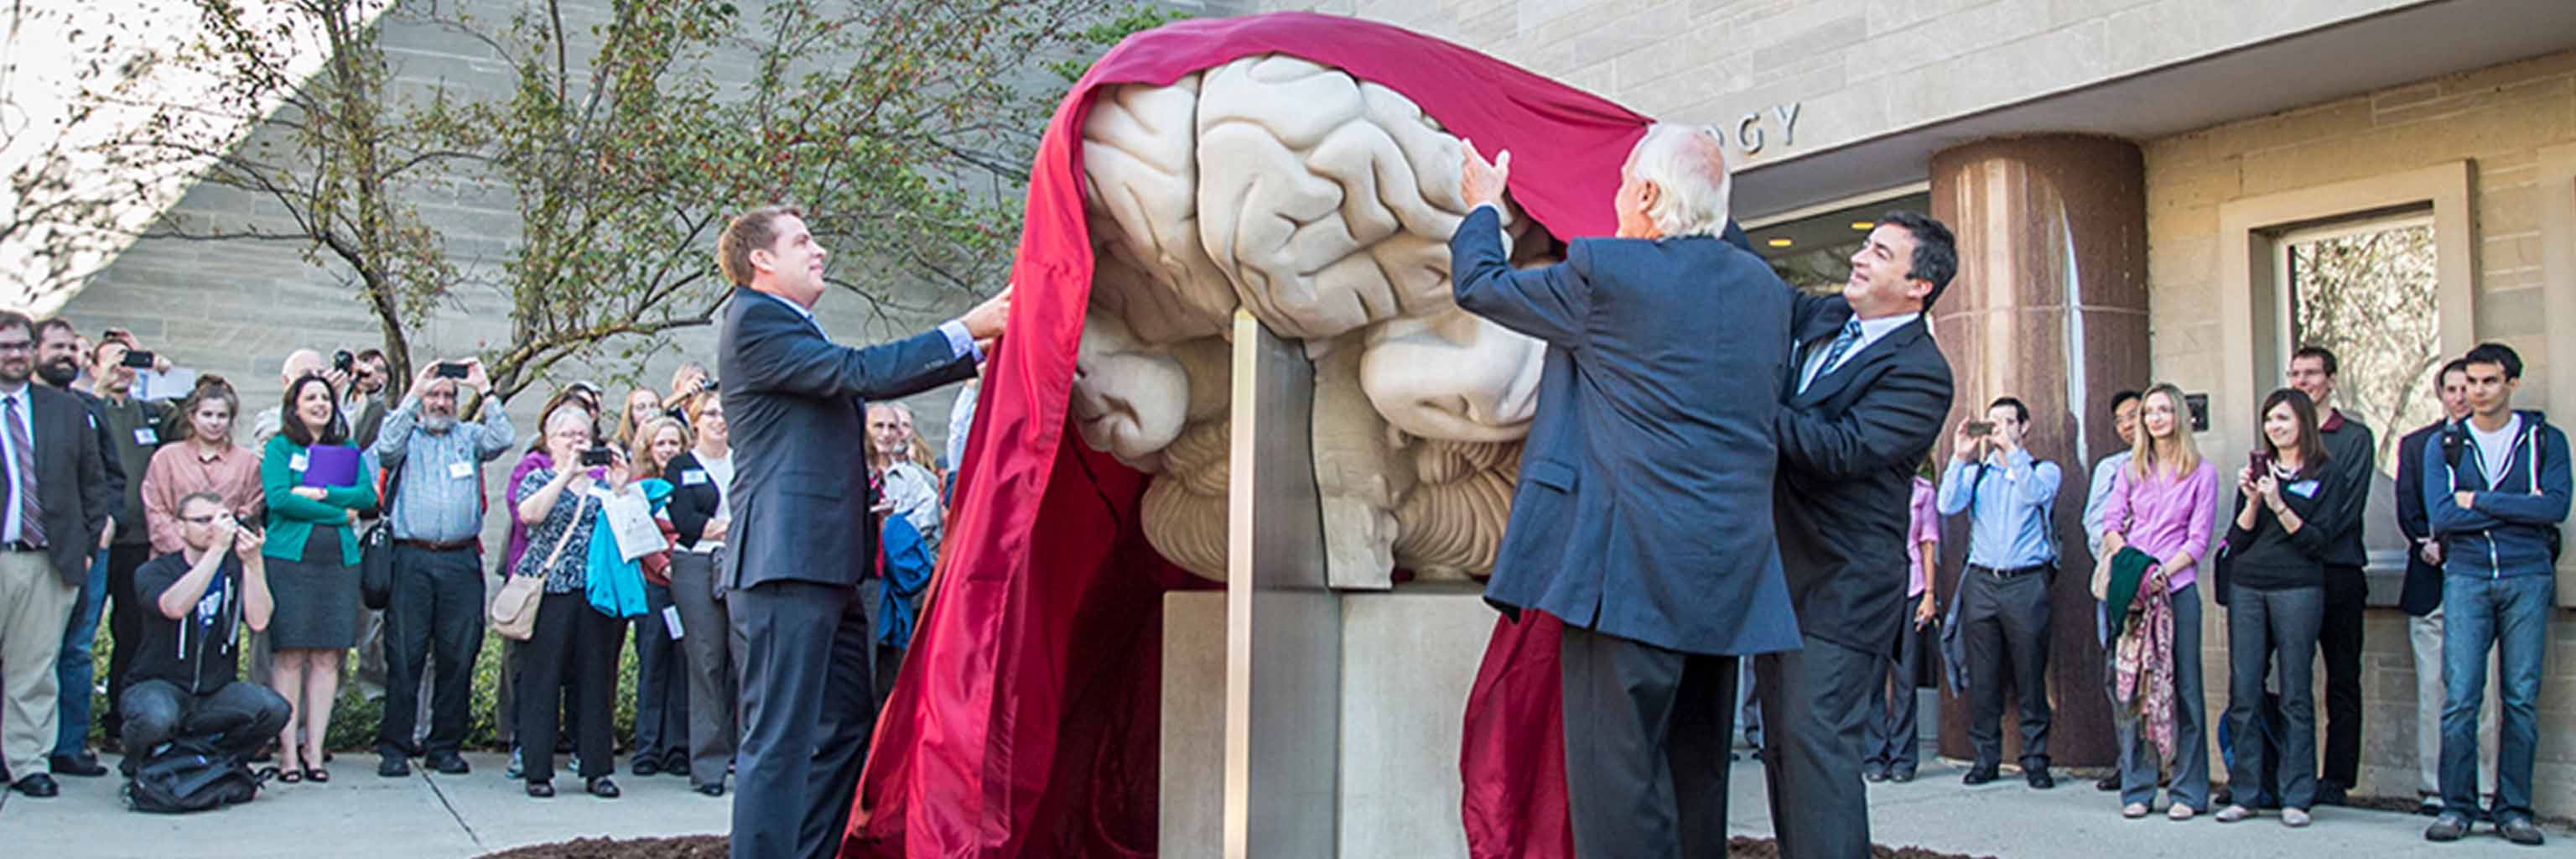 three men in suits unveil human brain statue in front of crowd